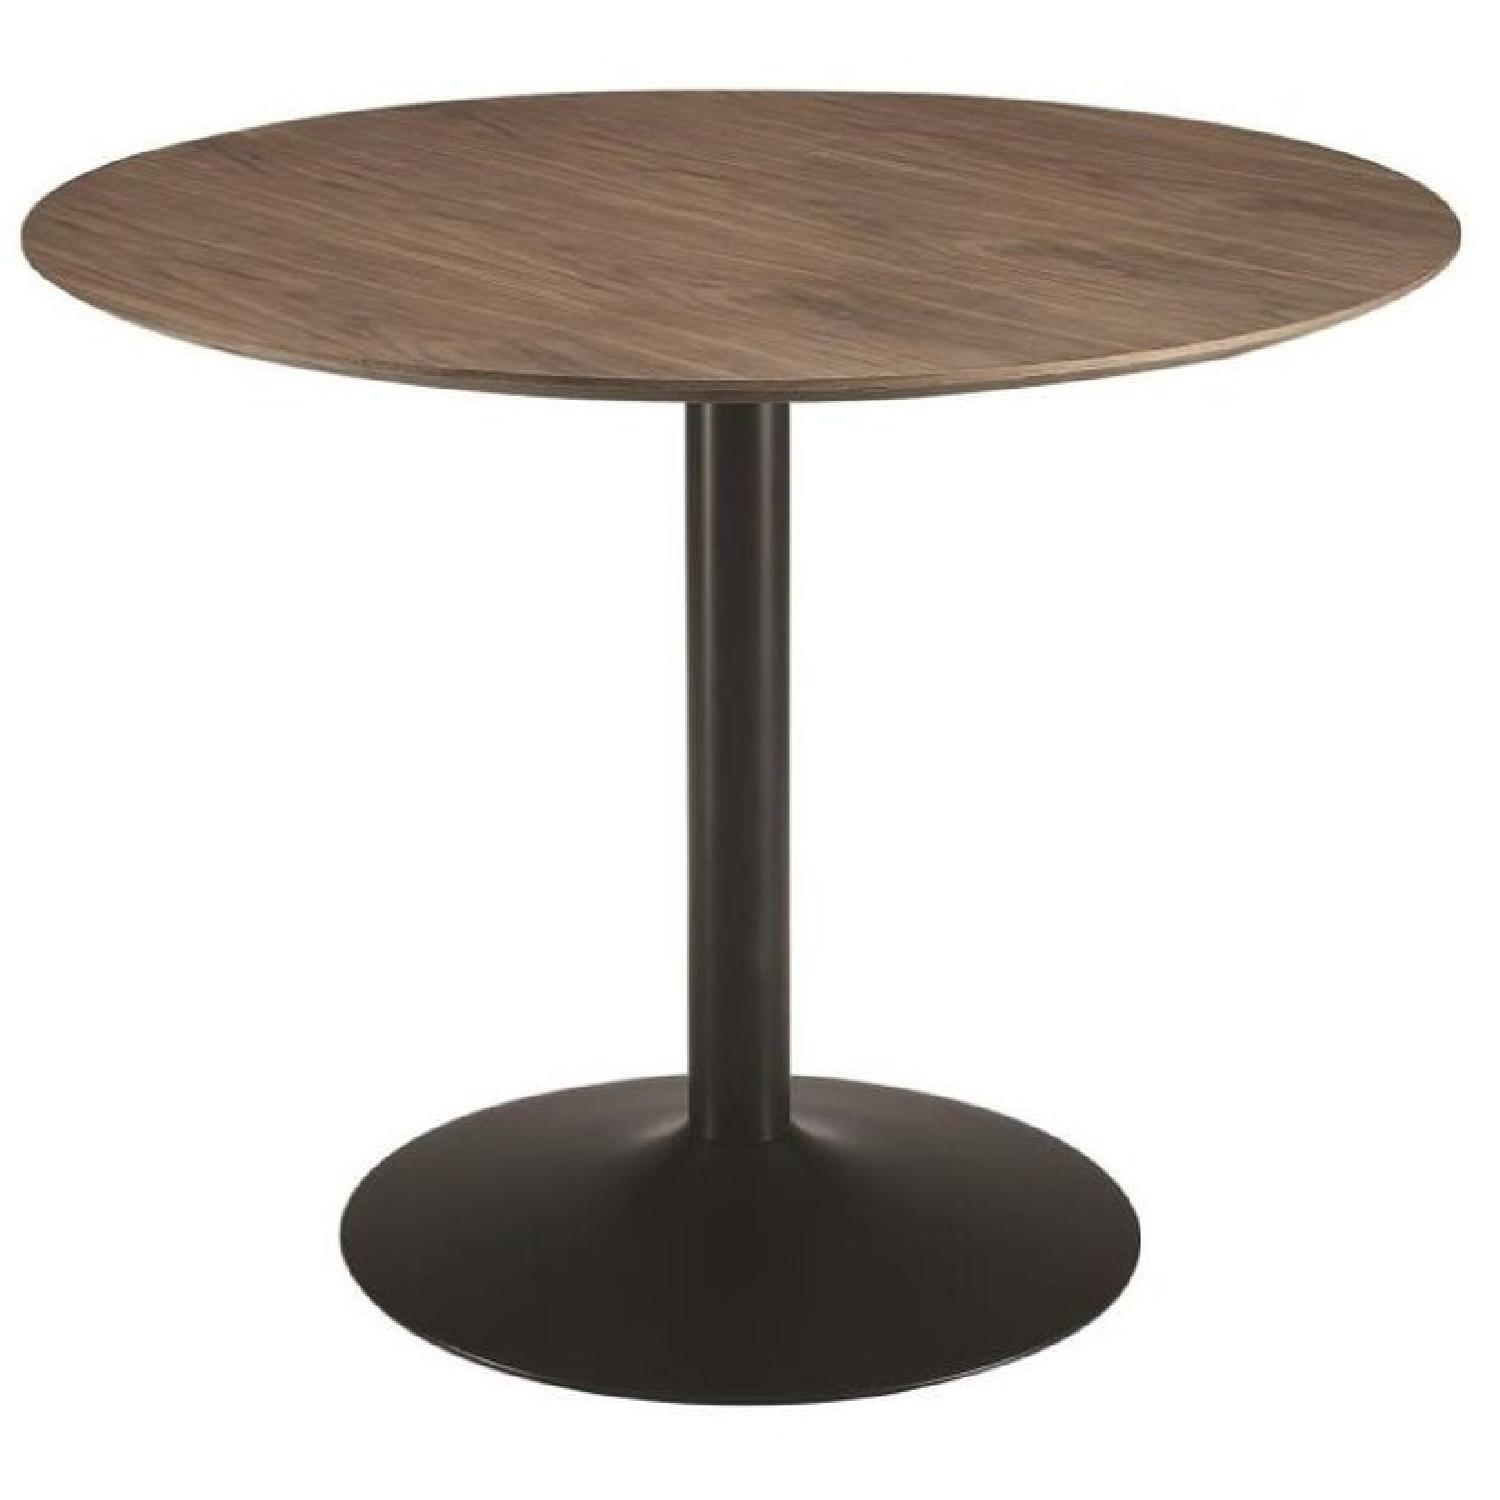 Modern Dining Table w/ Walnut Finish Top & Black Metal Base - image-0